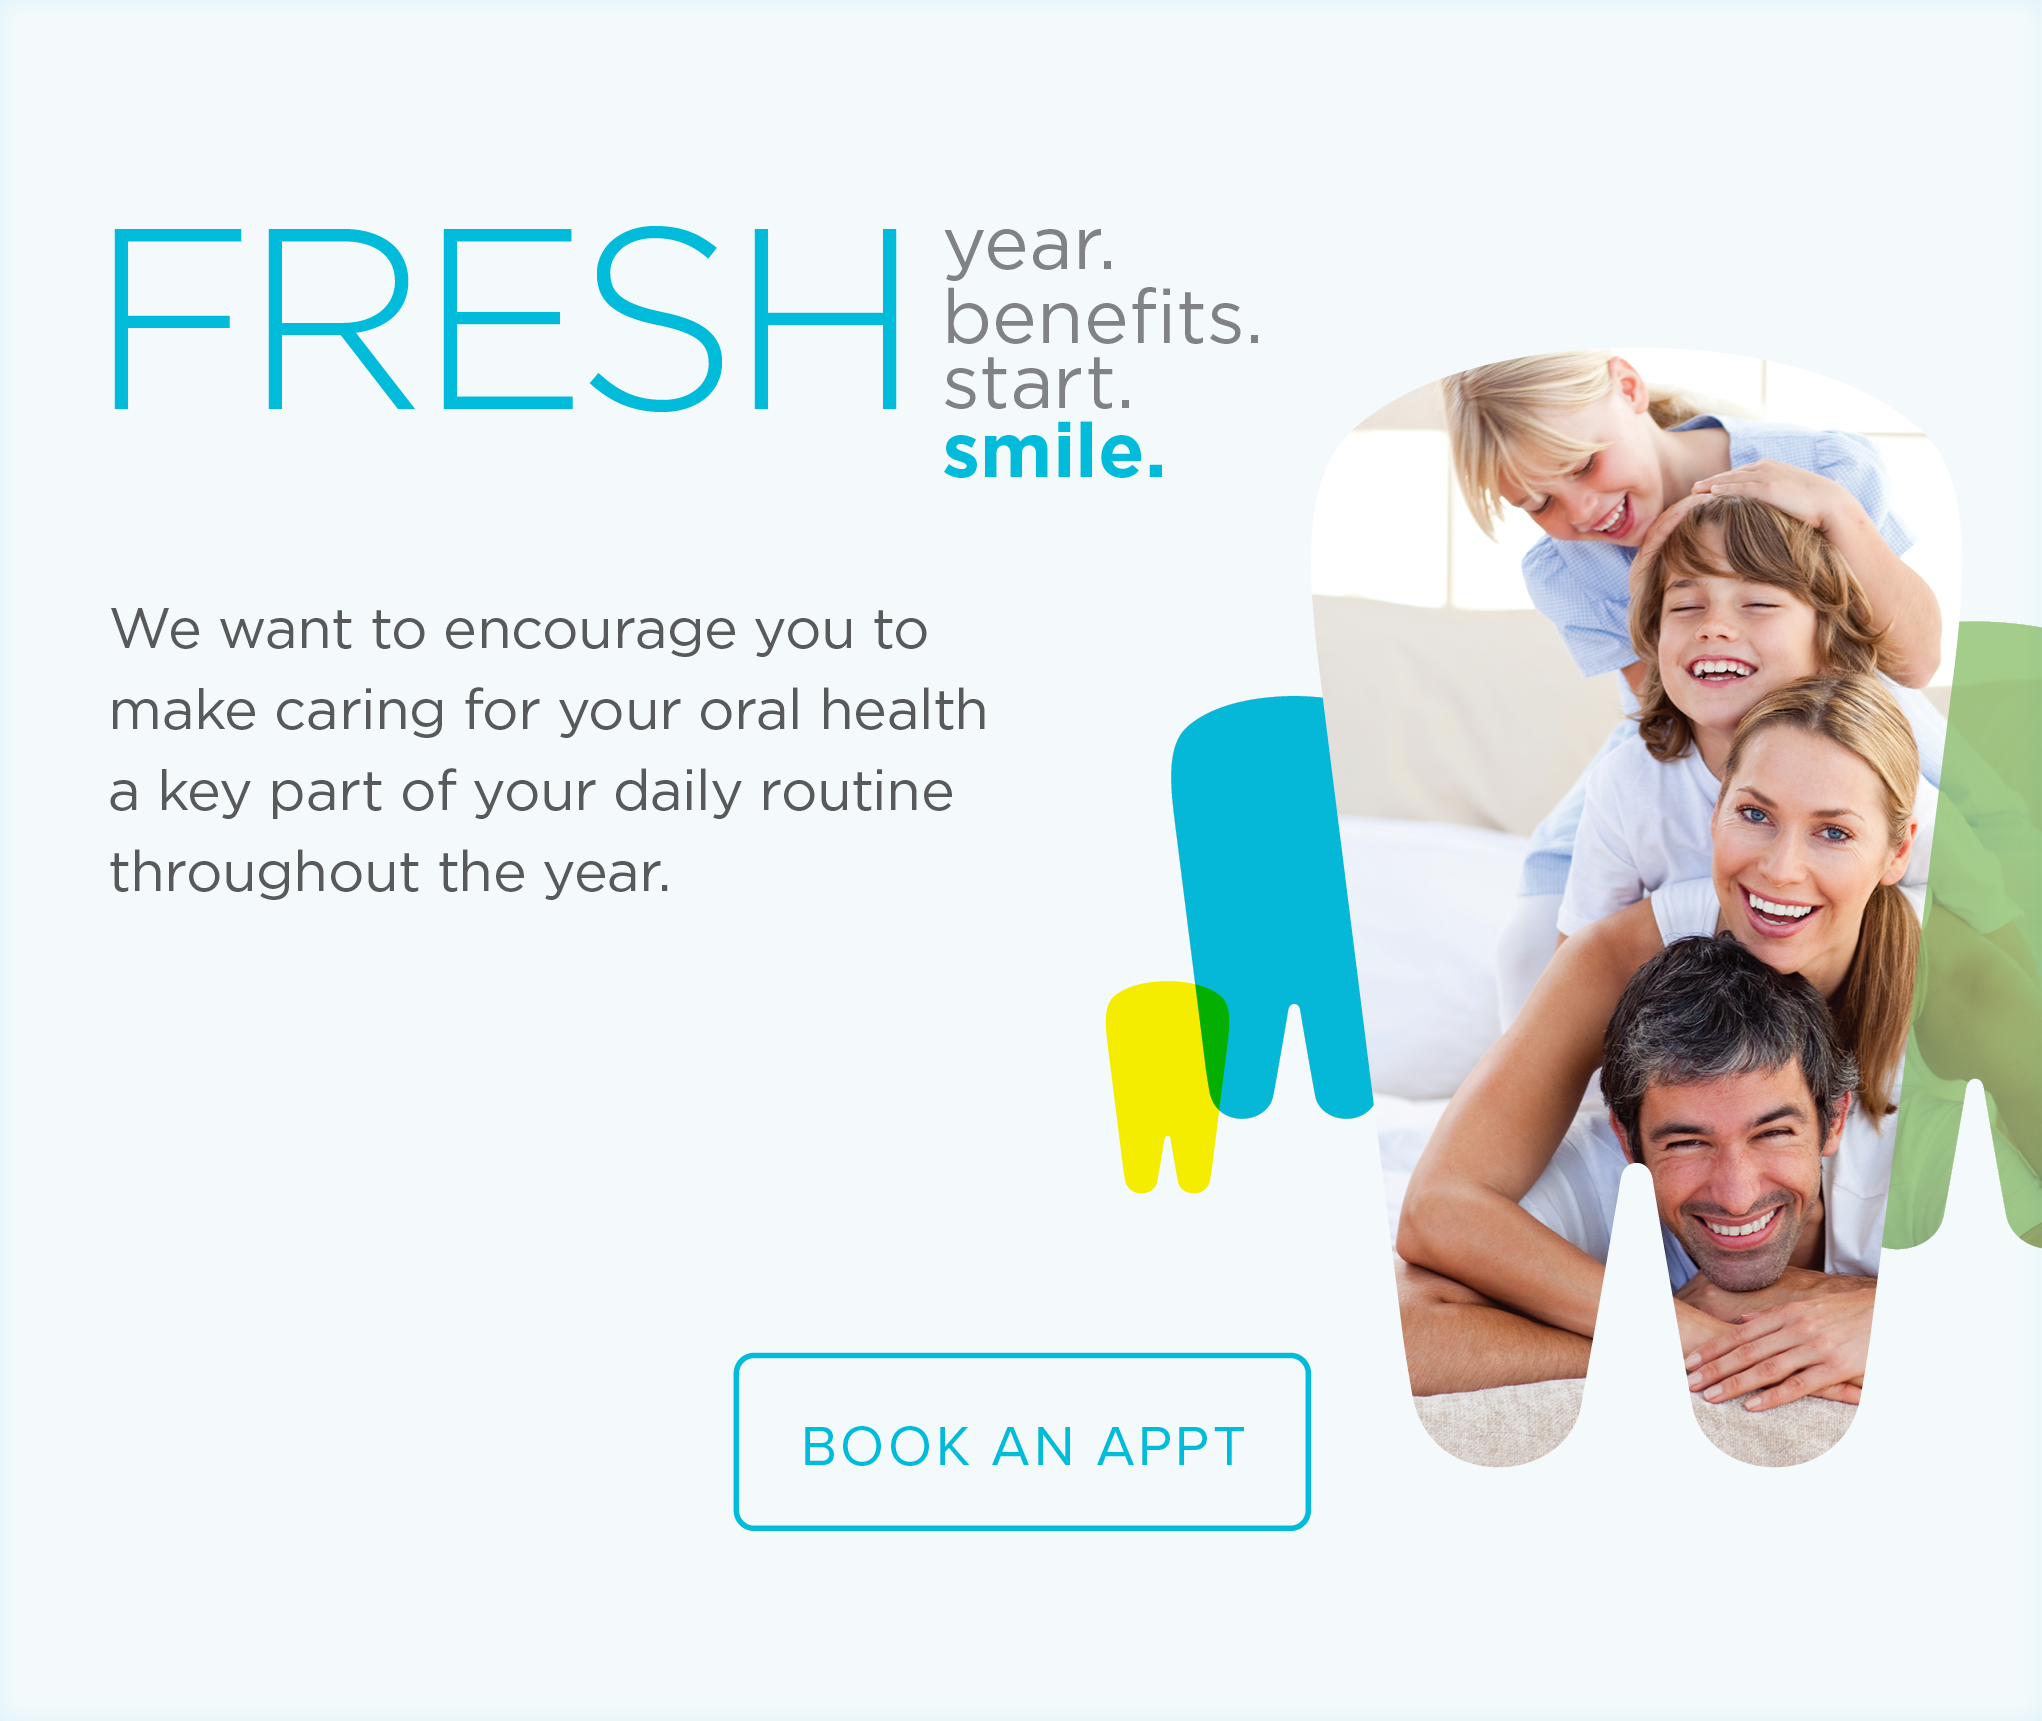 Citrus Heights Modern Dentistry - Make the Most of Your Benefits